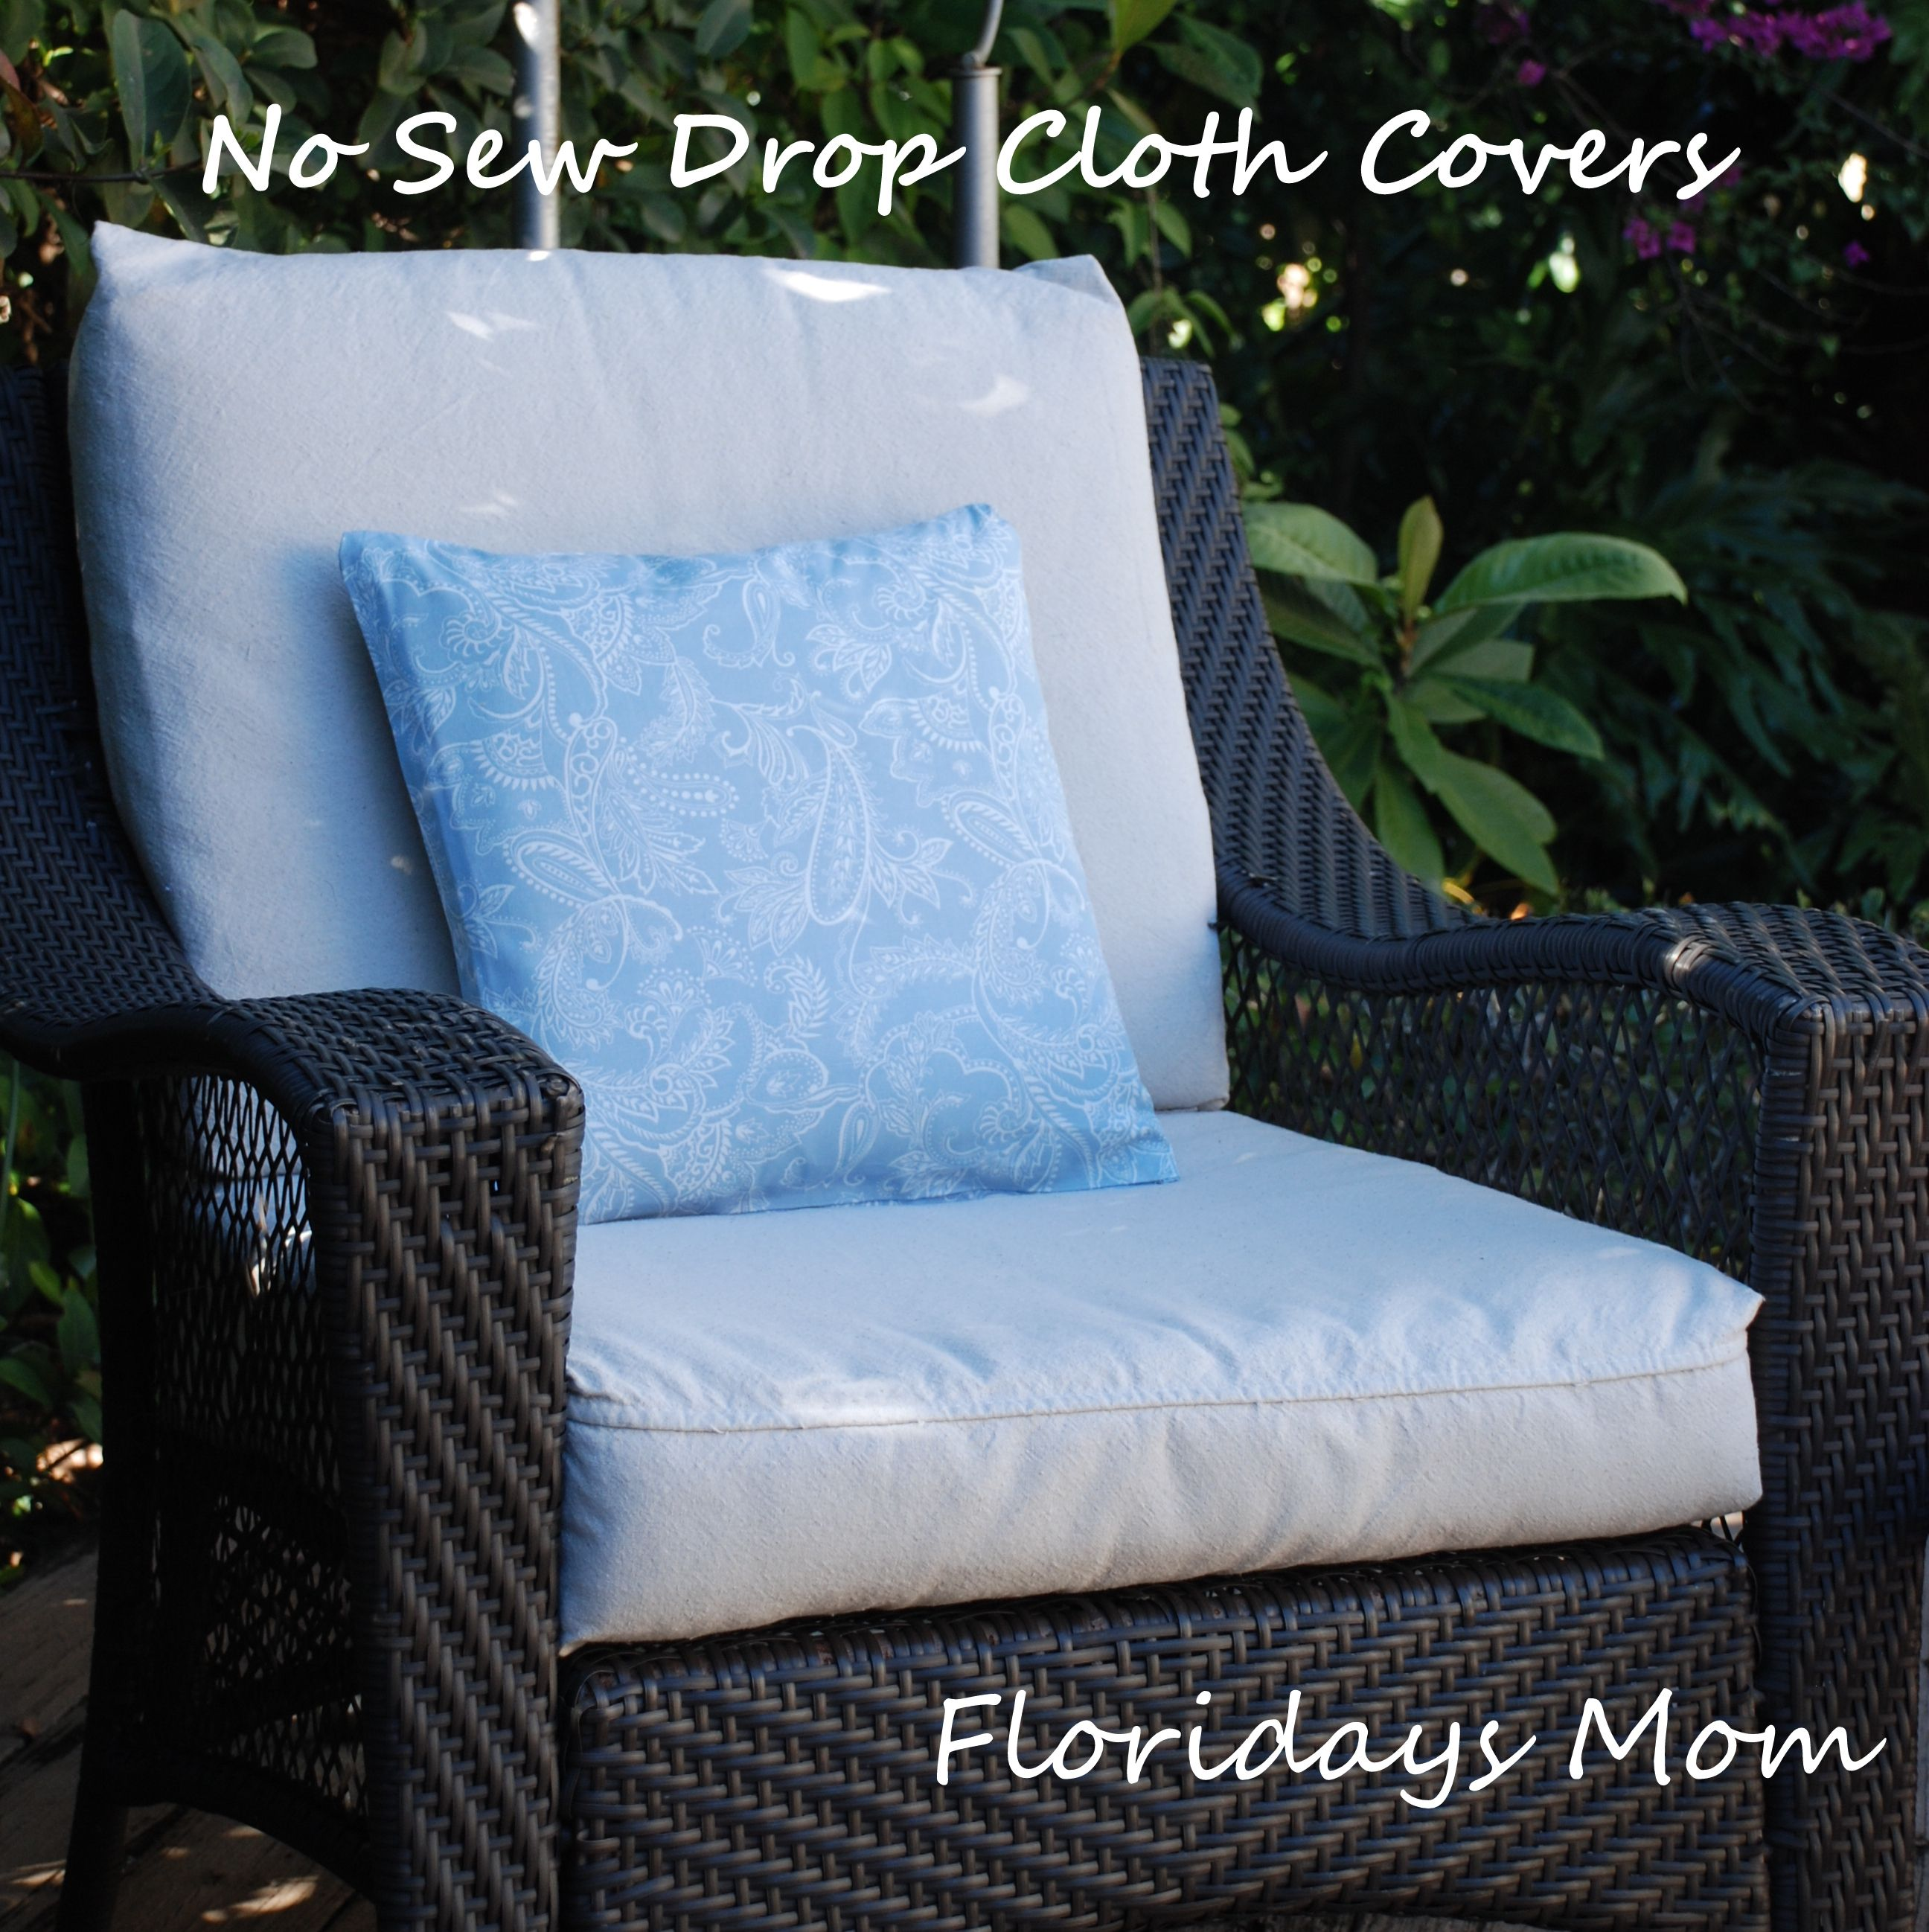 Very Clever   For Upgrading Patio Furniture! No Sew Drop Cloth Cushion  Covers